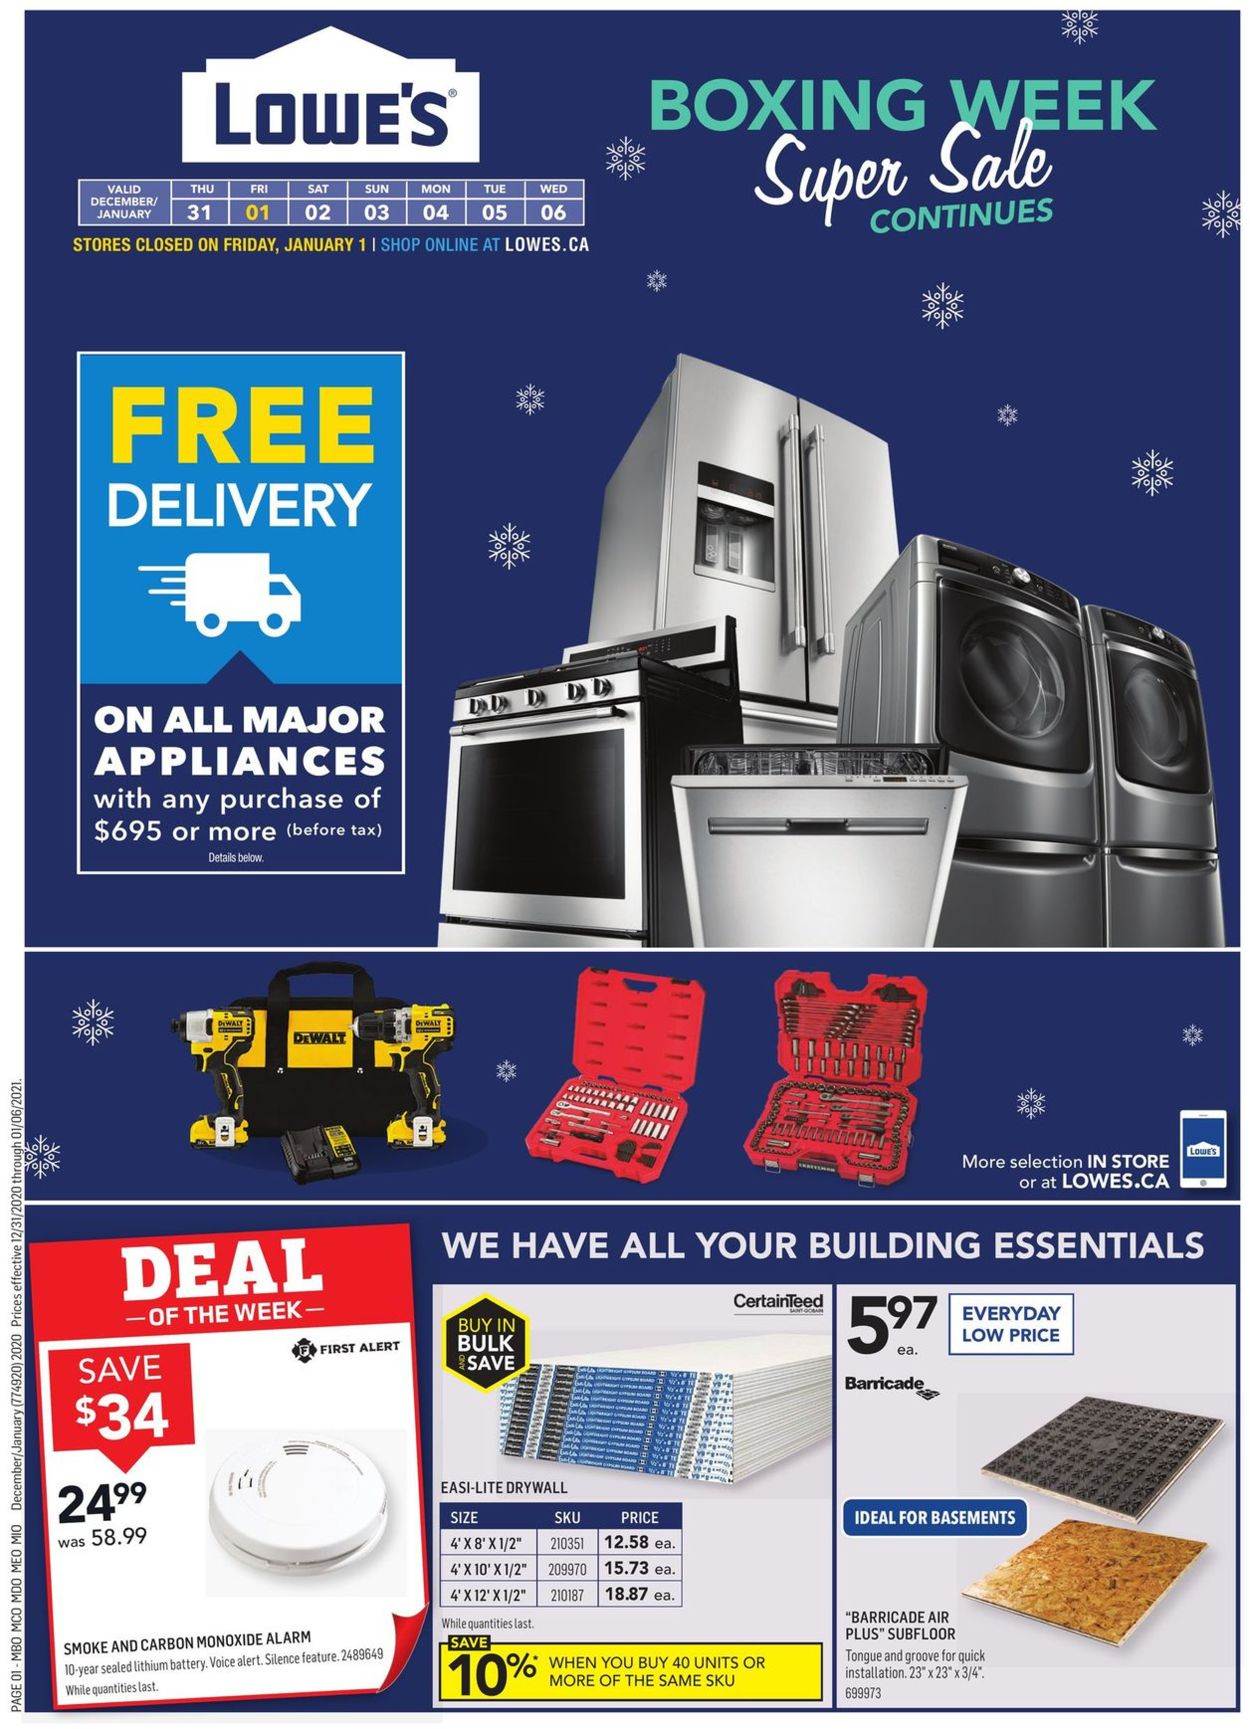 Lowes - Boxing Week 2020 Flyer - 12/31-01/06/2021